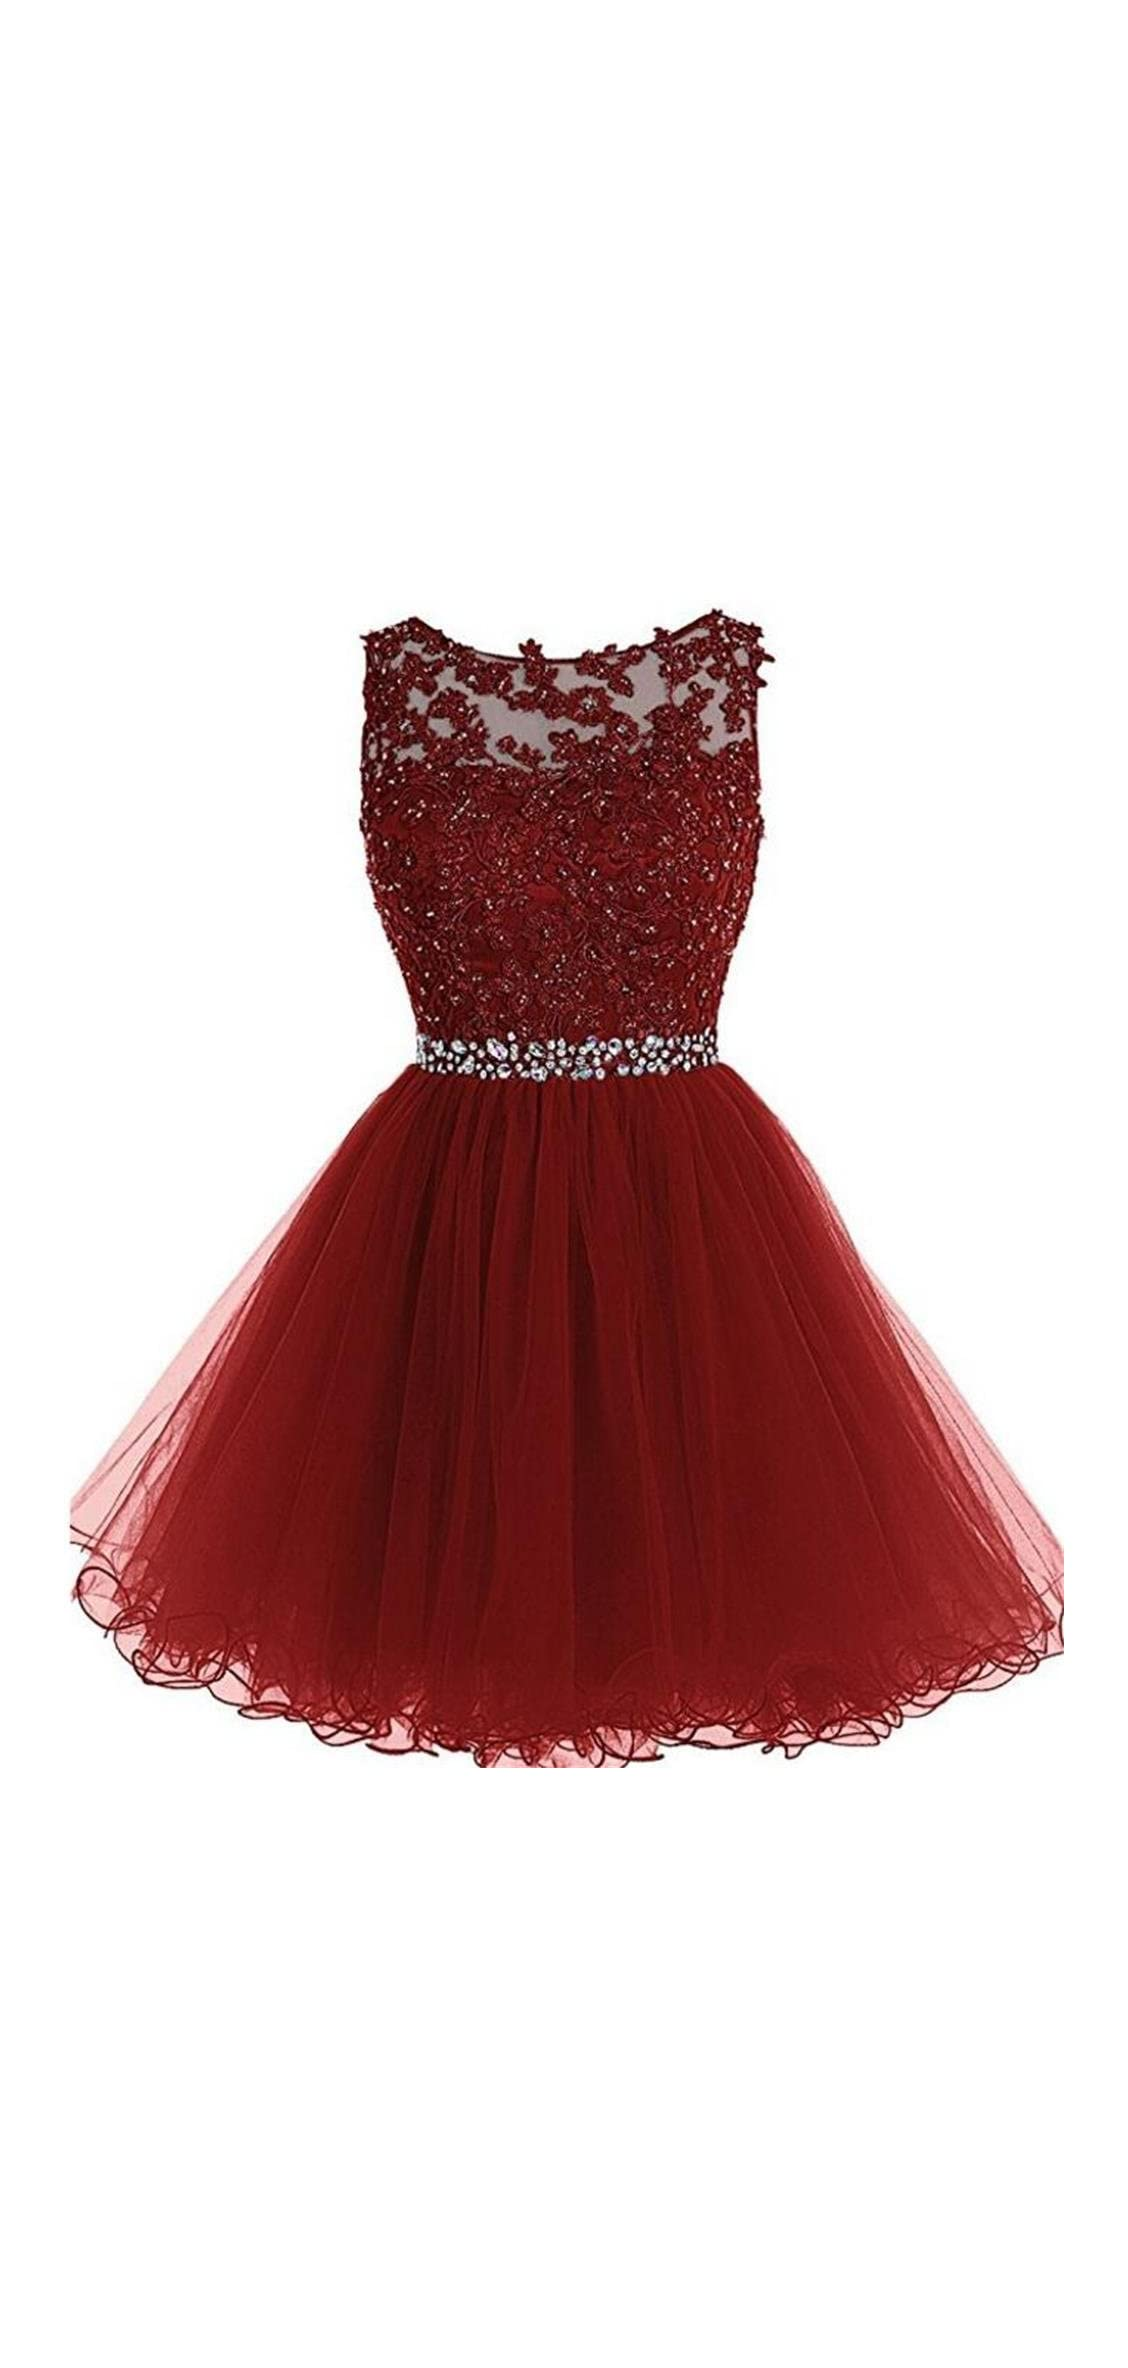 Prom Dresses Short For Women Homecoming Dress  A Line